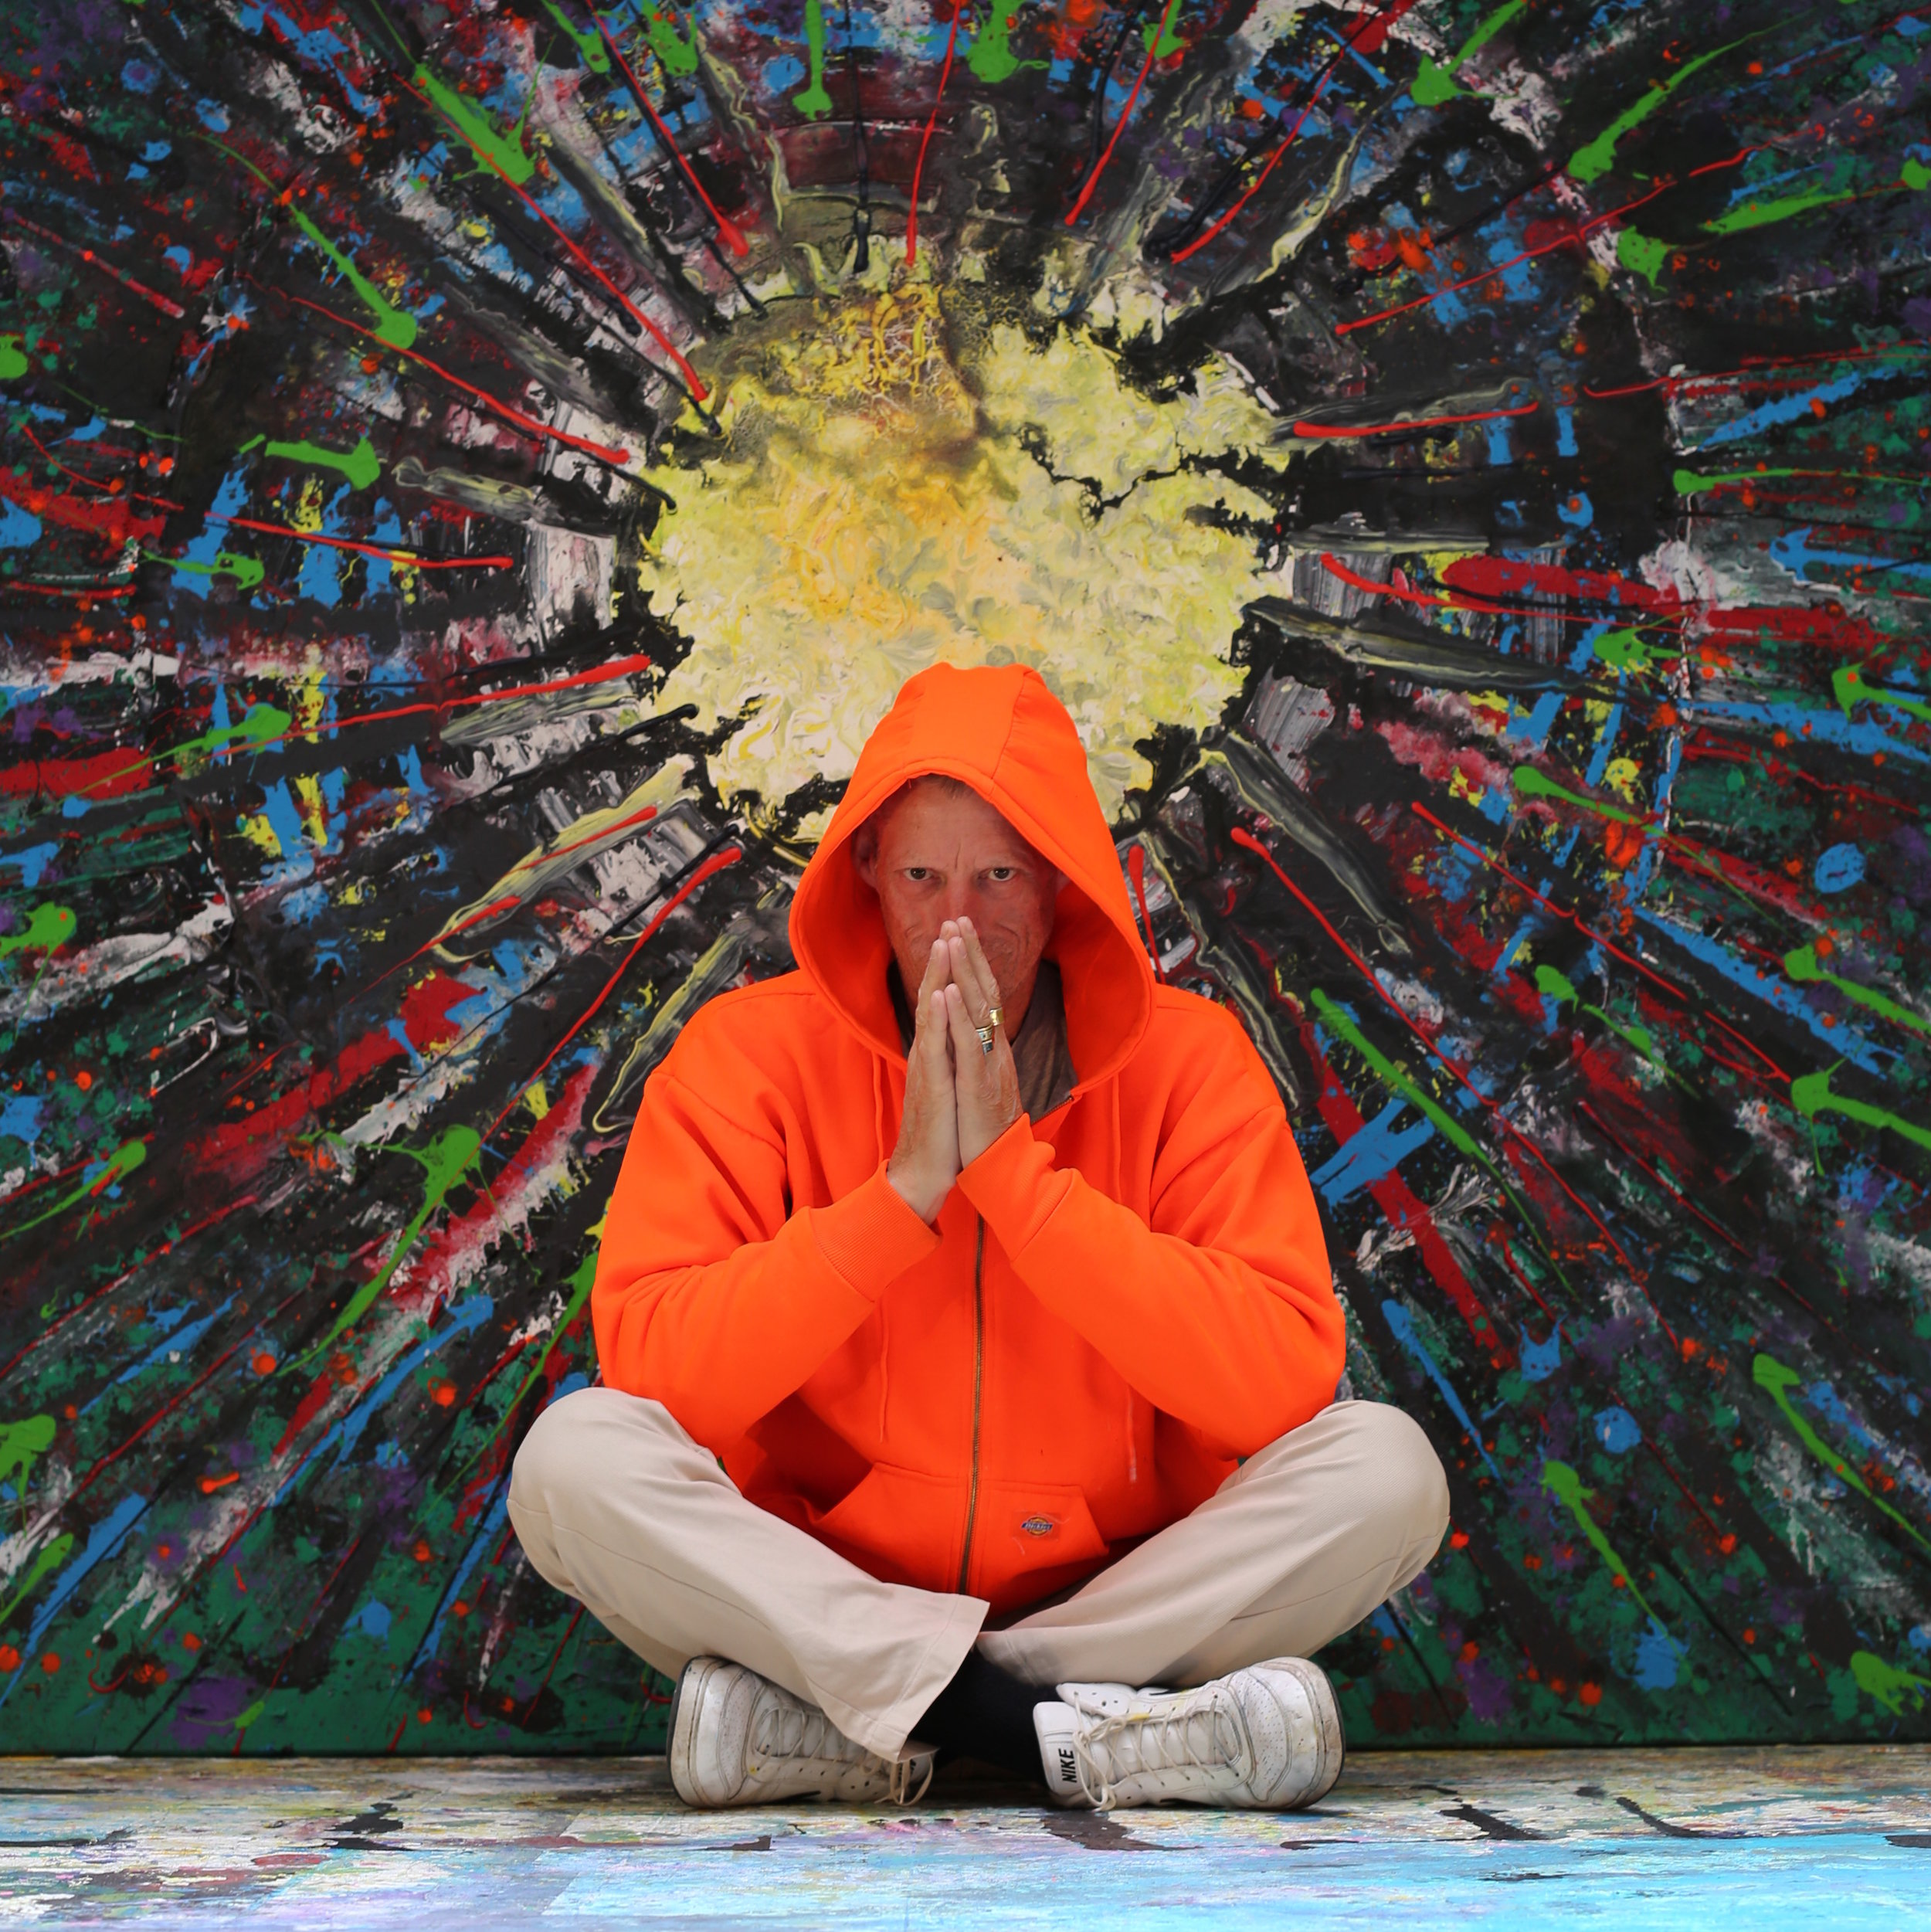 European artist Harry van Gestel in front of his big abstract painting